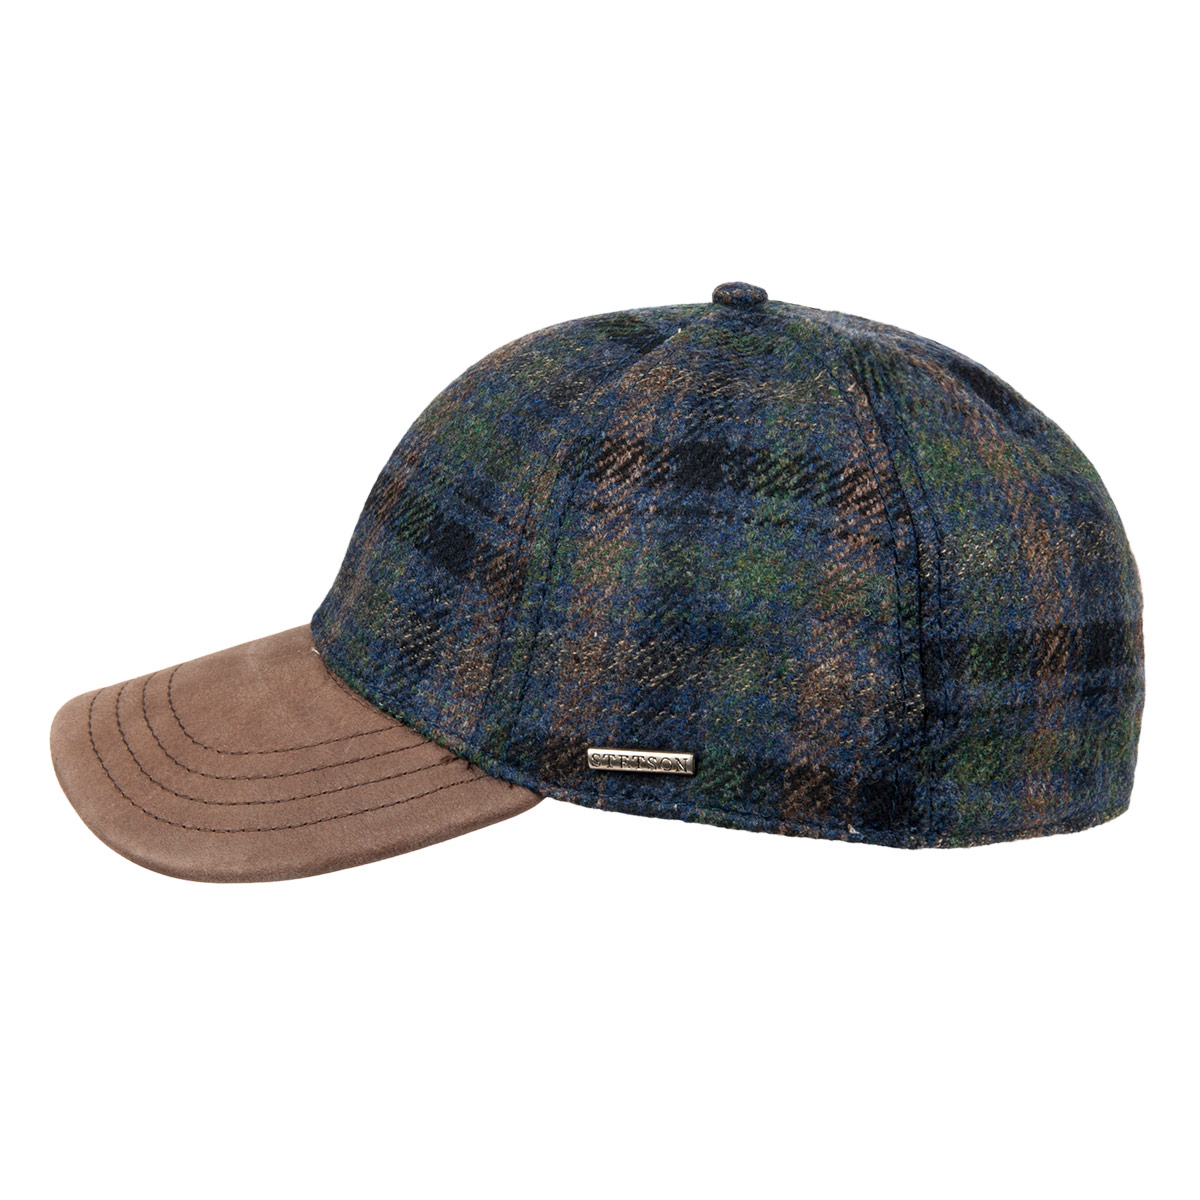 91b3c7de7c6 checked baseball cap lined in cotton Baseball Cap Wool Cashmere by STETSON